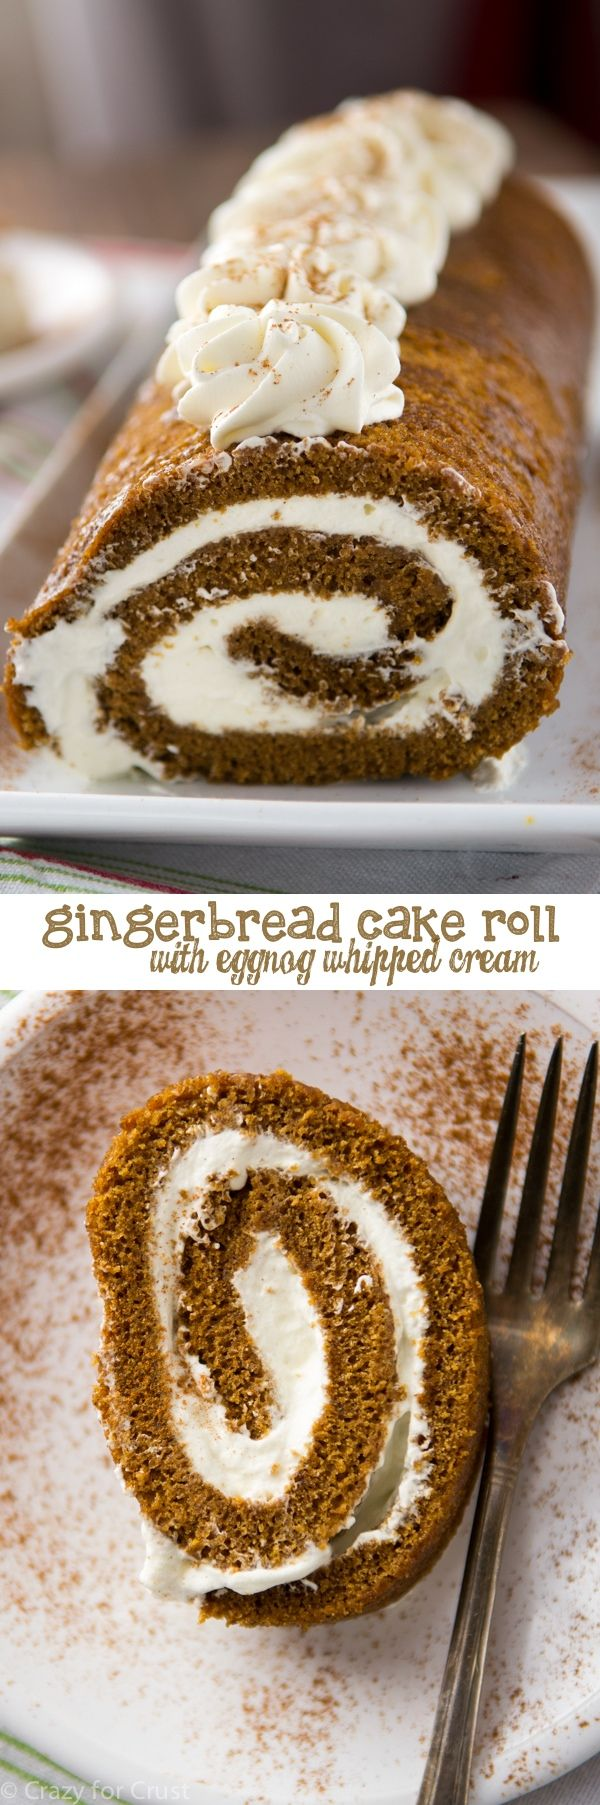 Gingerbread Cake Roll filled with Eggnog Whipped Cream - perfect for any Christmas party!